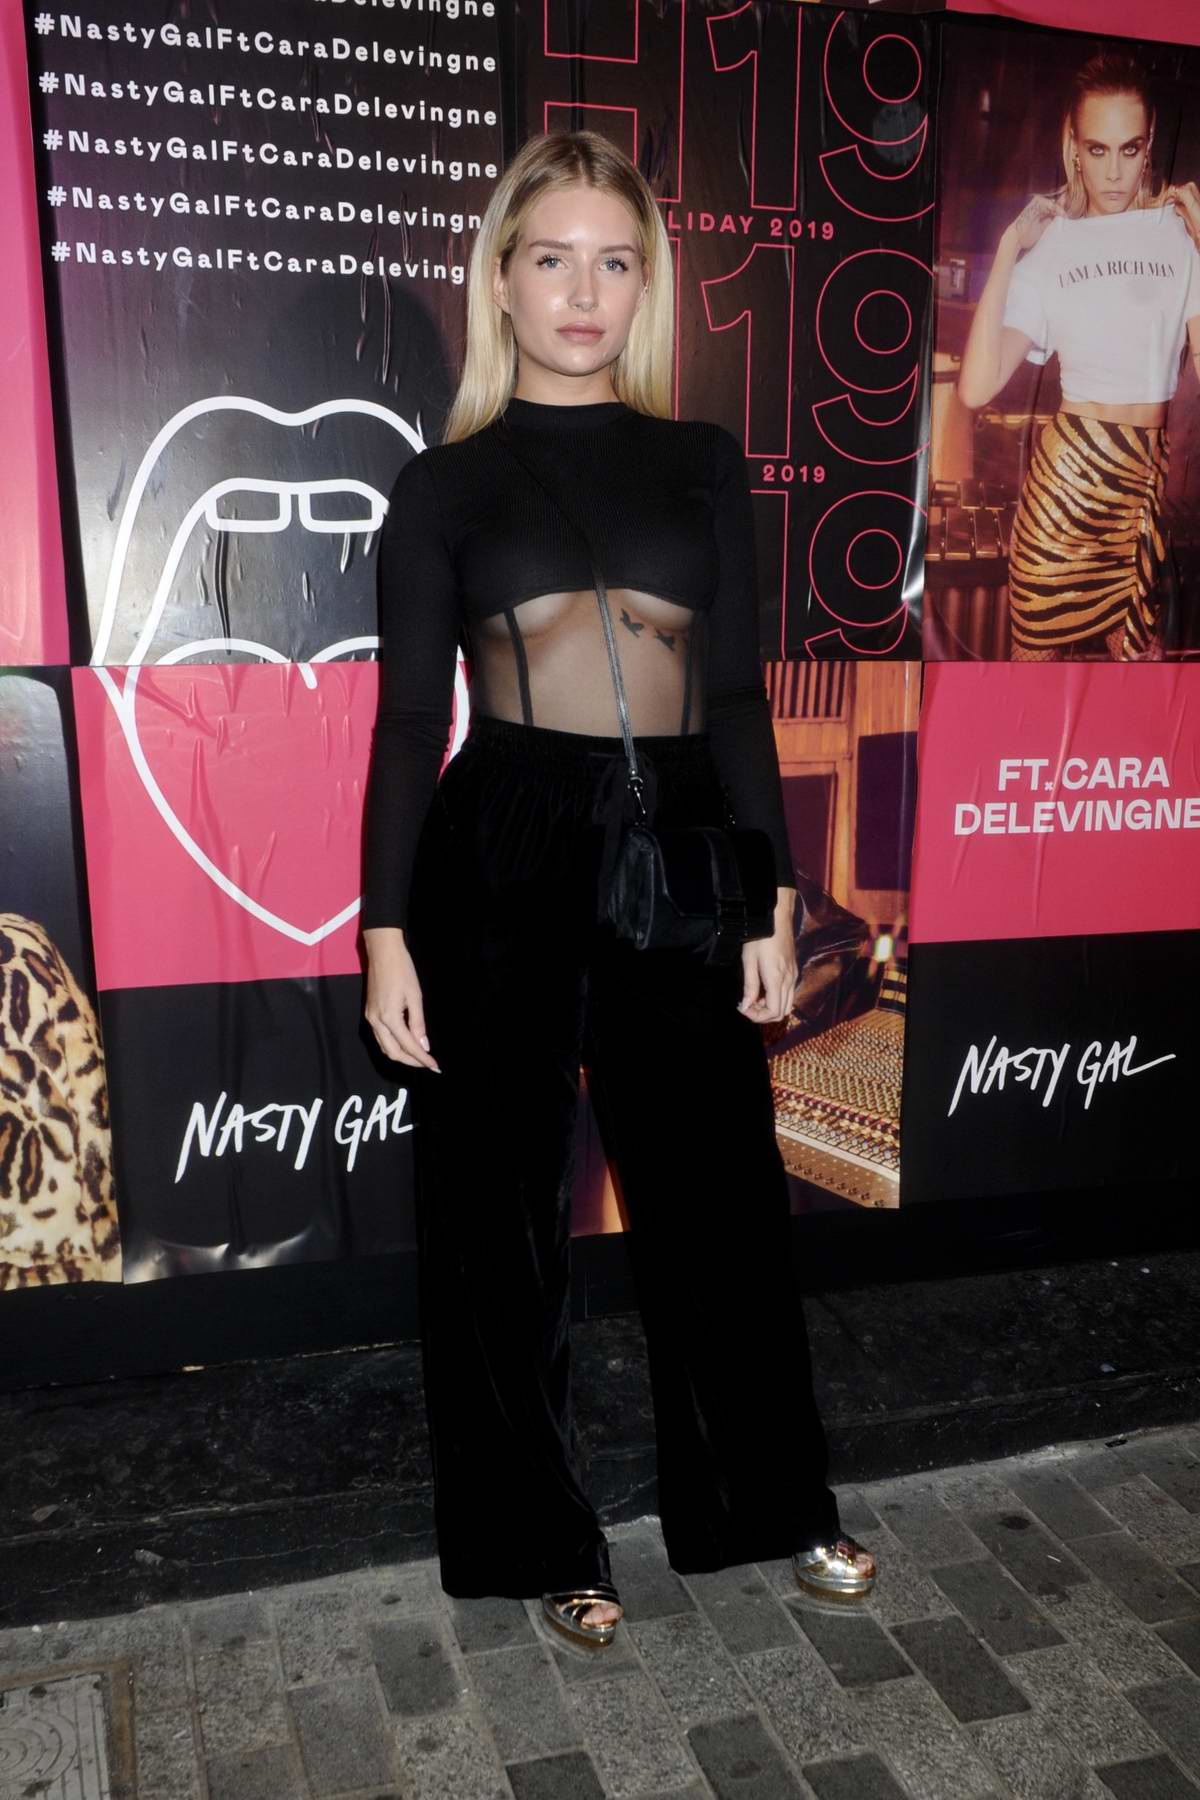 Lottie Moss attends Cara Delevingne x Nasty Gal Launch Party in London, UK